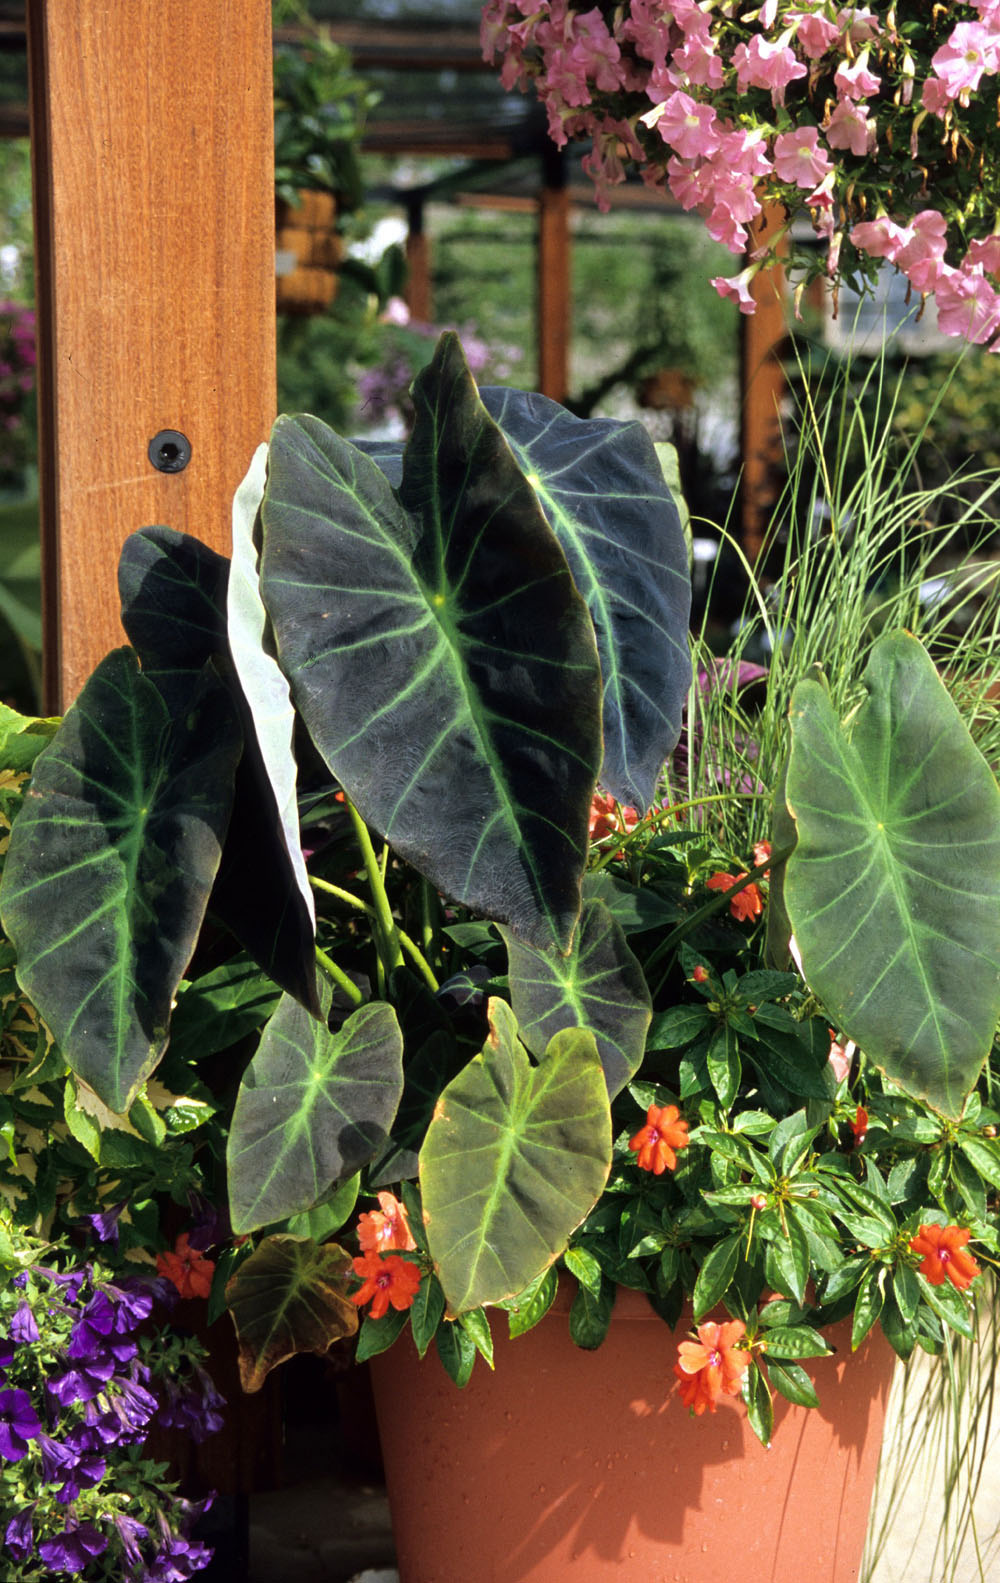 How to create a tropical garden - Achieve The Tropical Look In The Garden With Imperial Taro This Cold Hardy Elephant